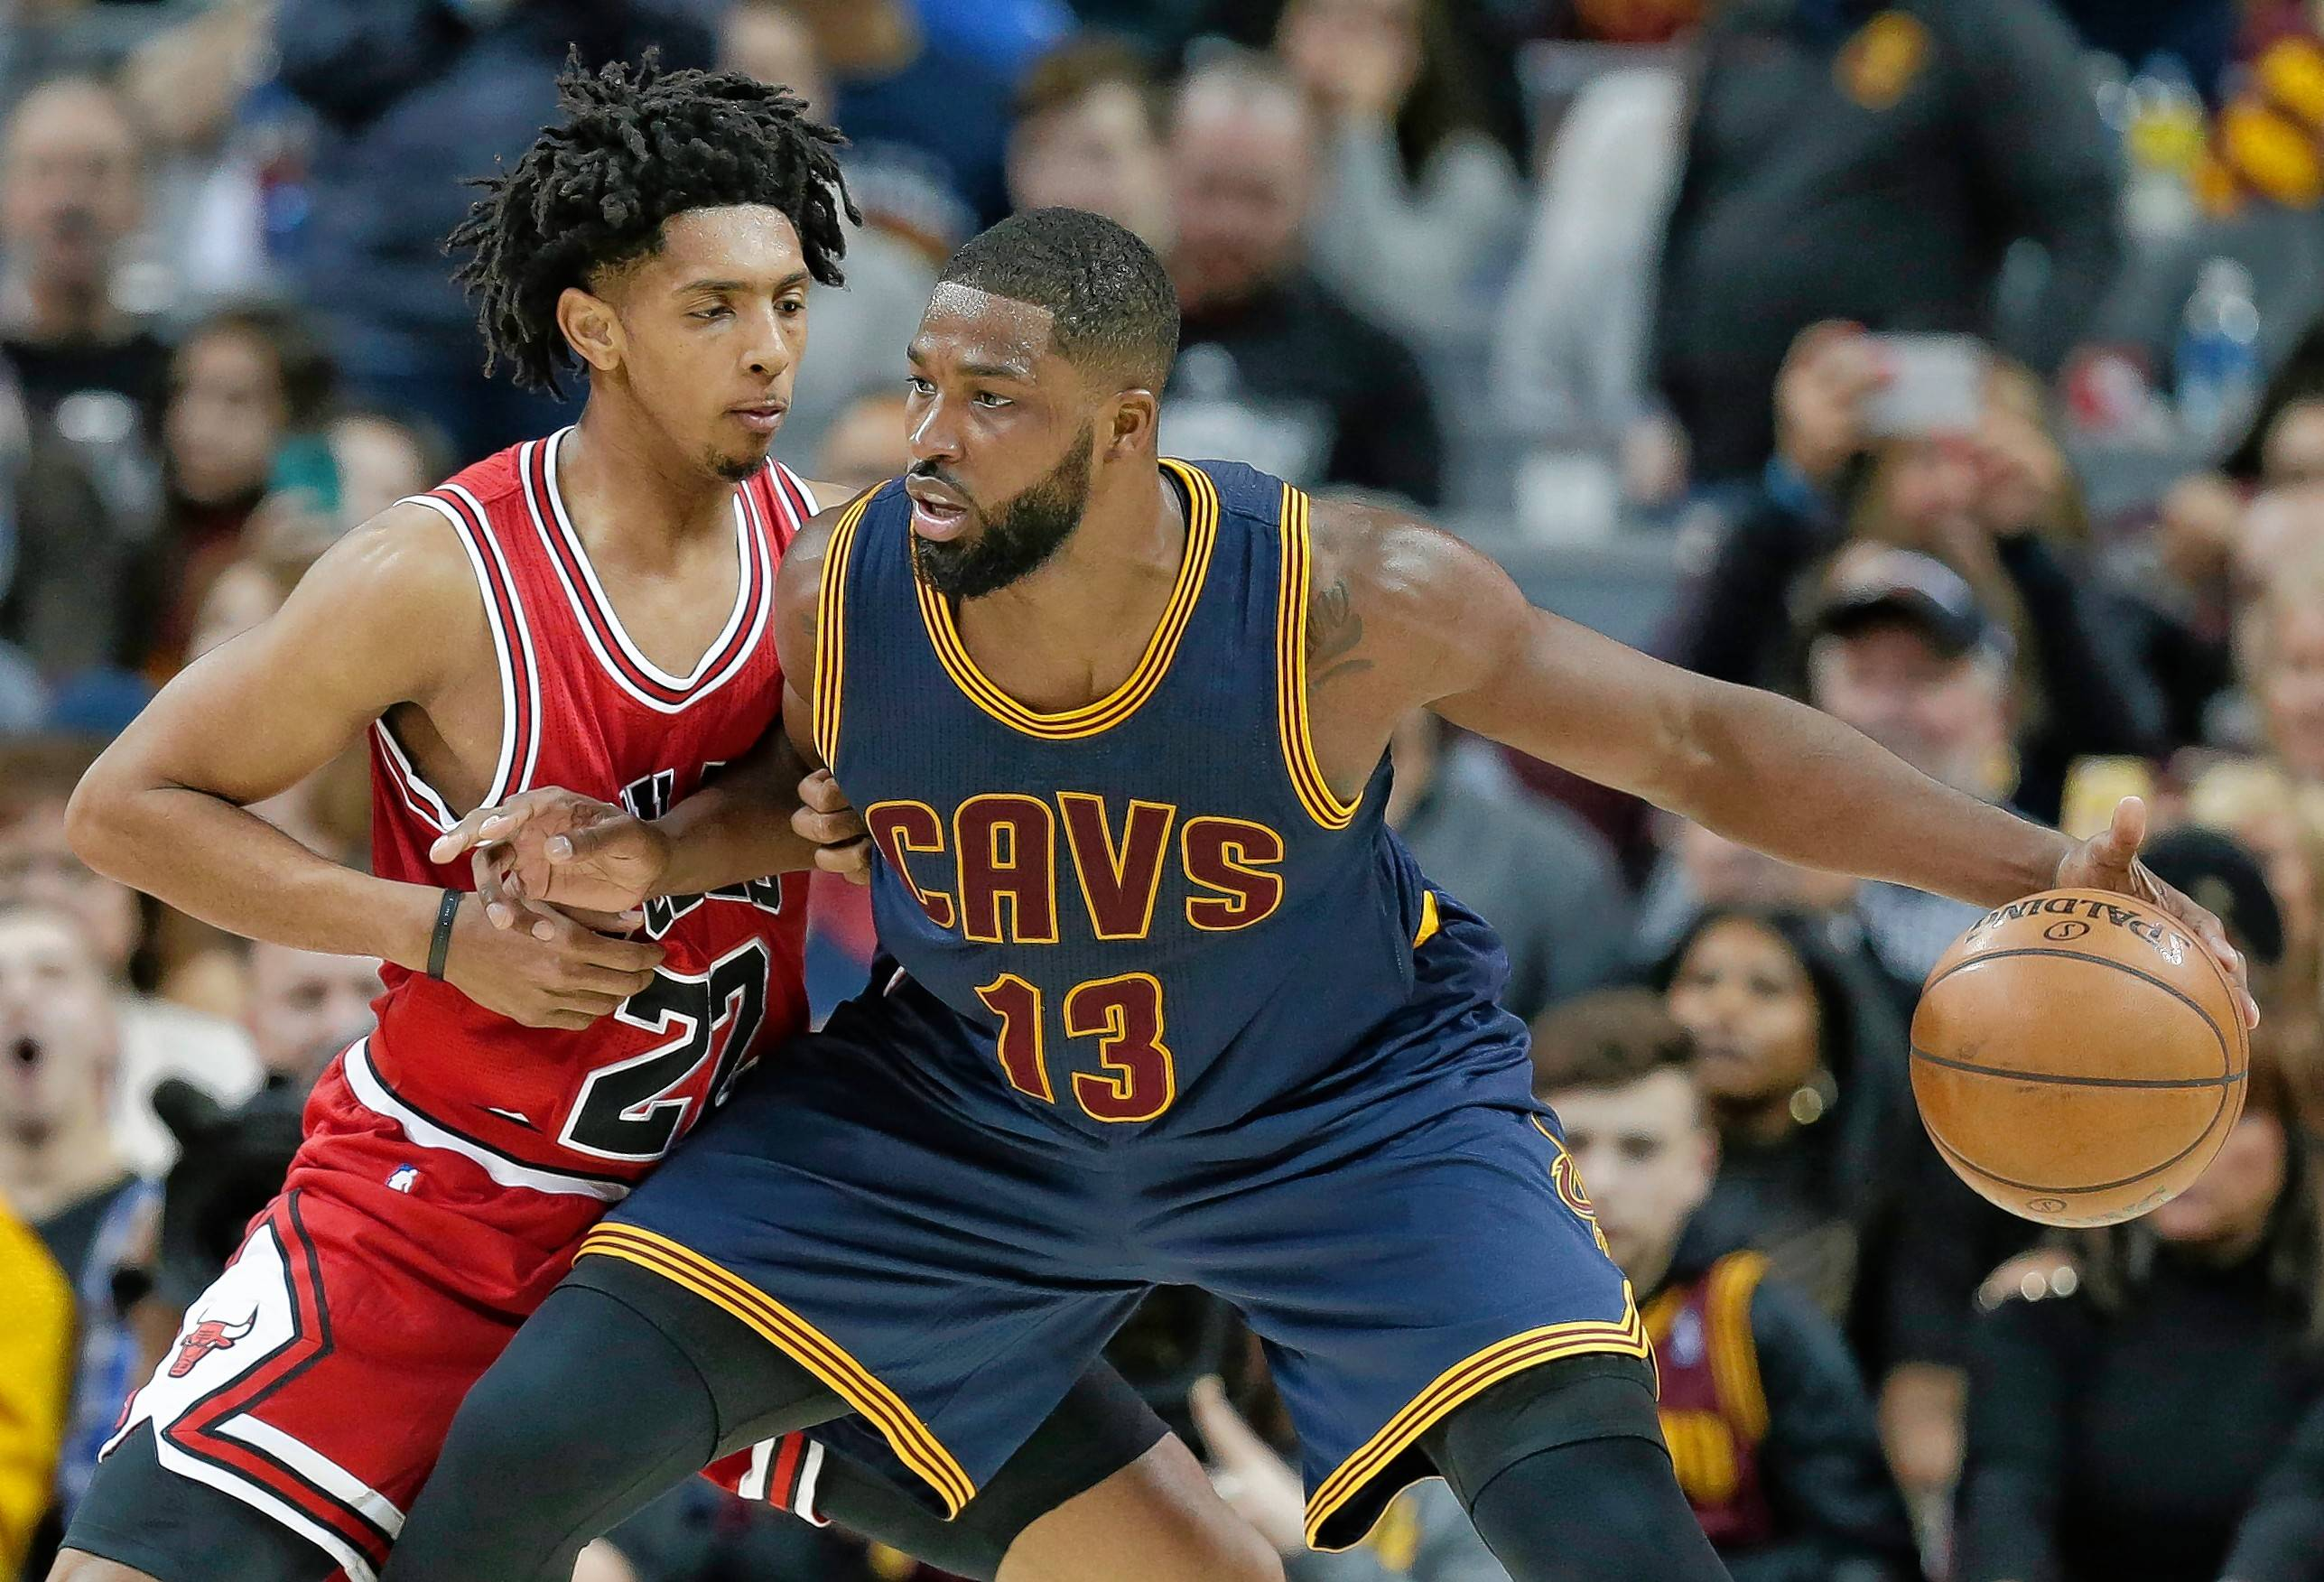 Cameron Payne played in his first game as a Chicago Bull Saturday, logging 12 minutes and producing 6 points, 1 assist and 2 turnovers. Payne is likely to be the next starting point guard, but the timing for the transition isn't clear.